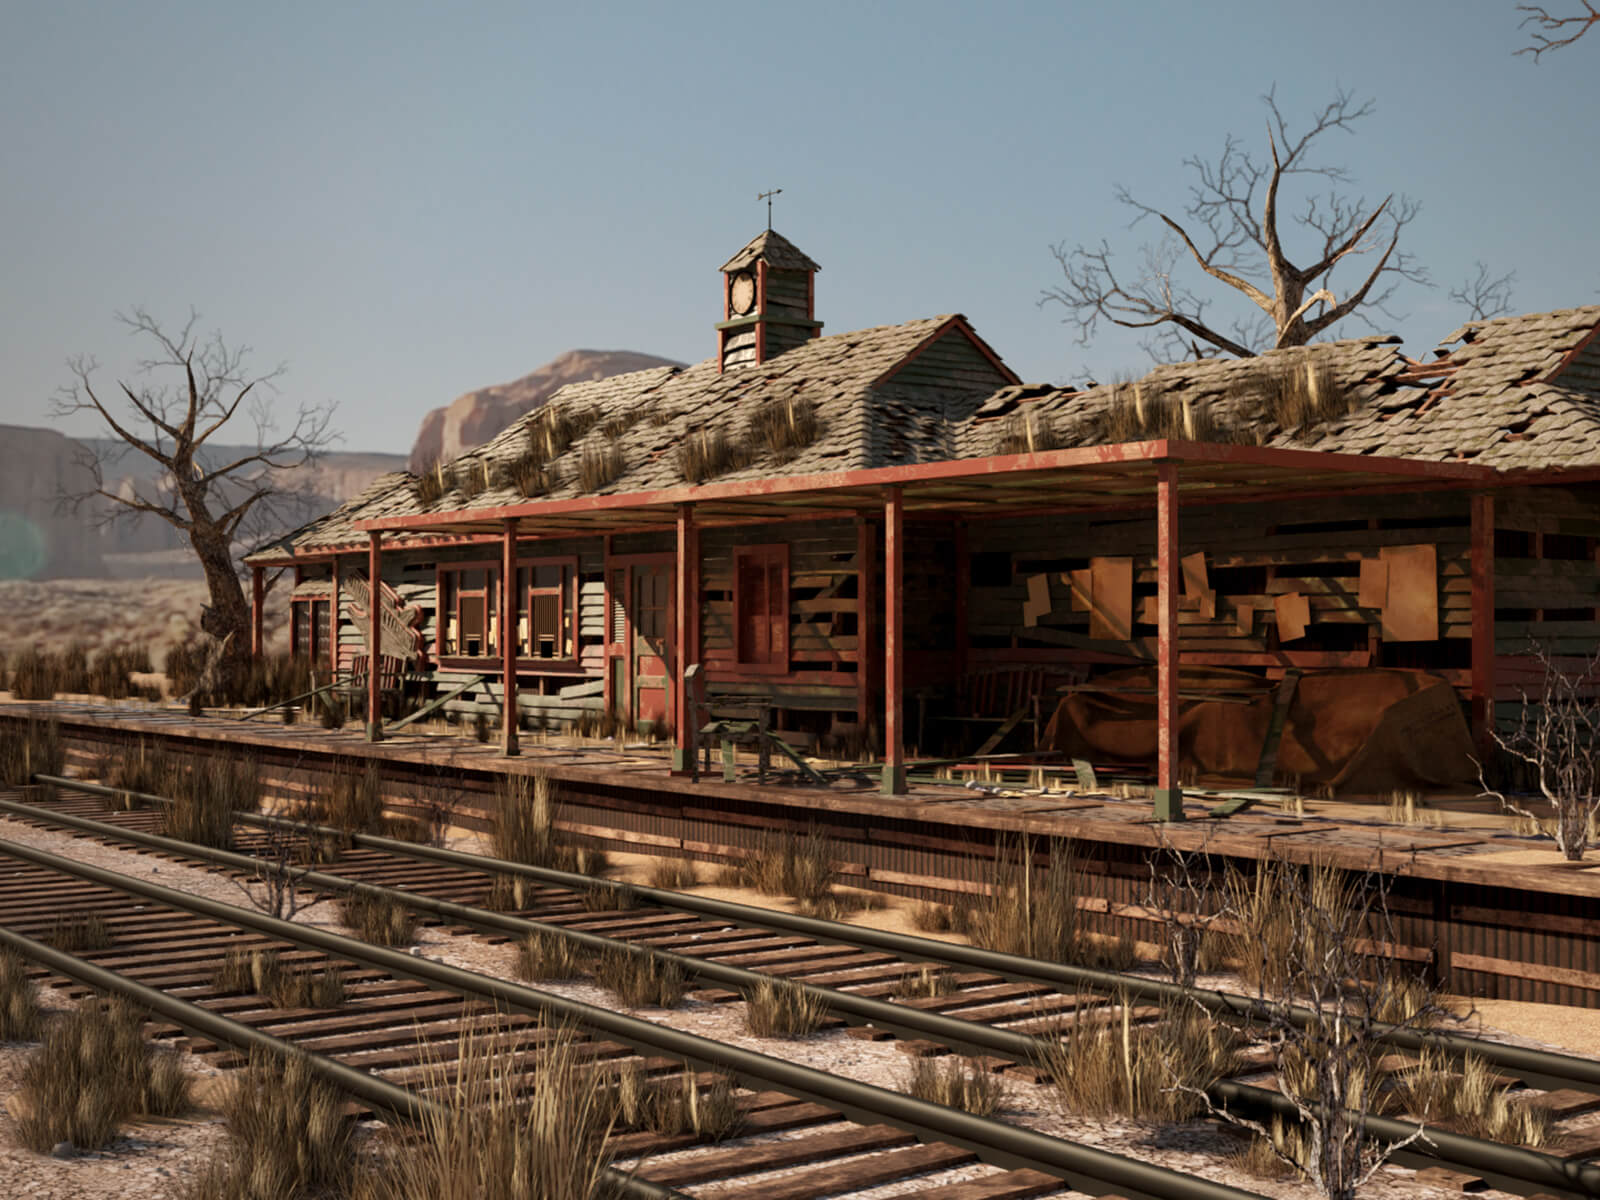 An abandoned train station in the desert